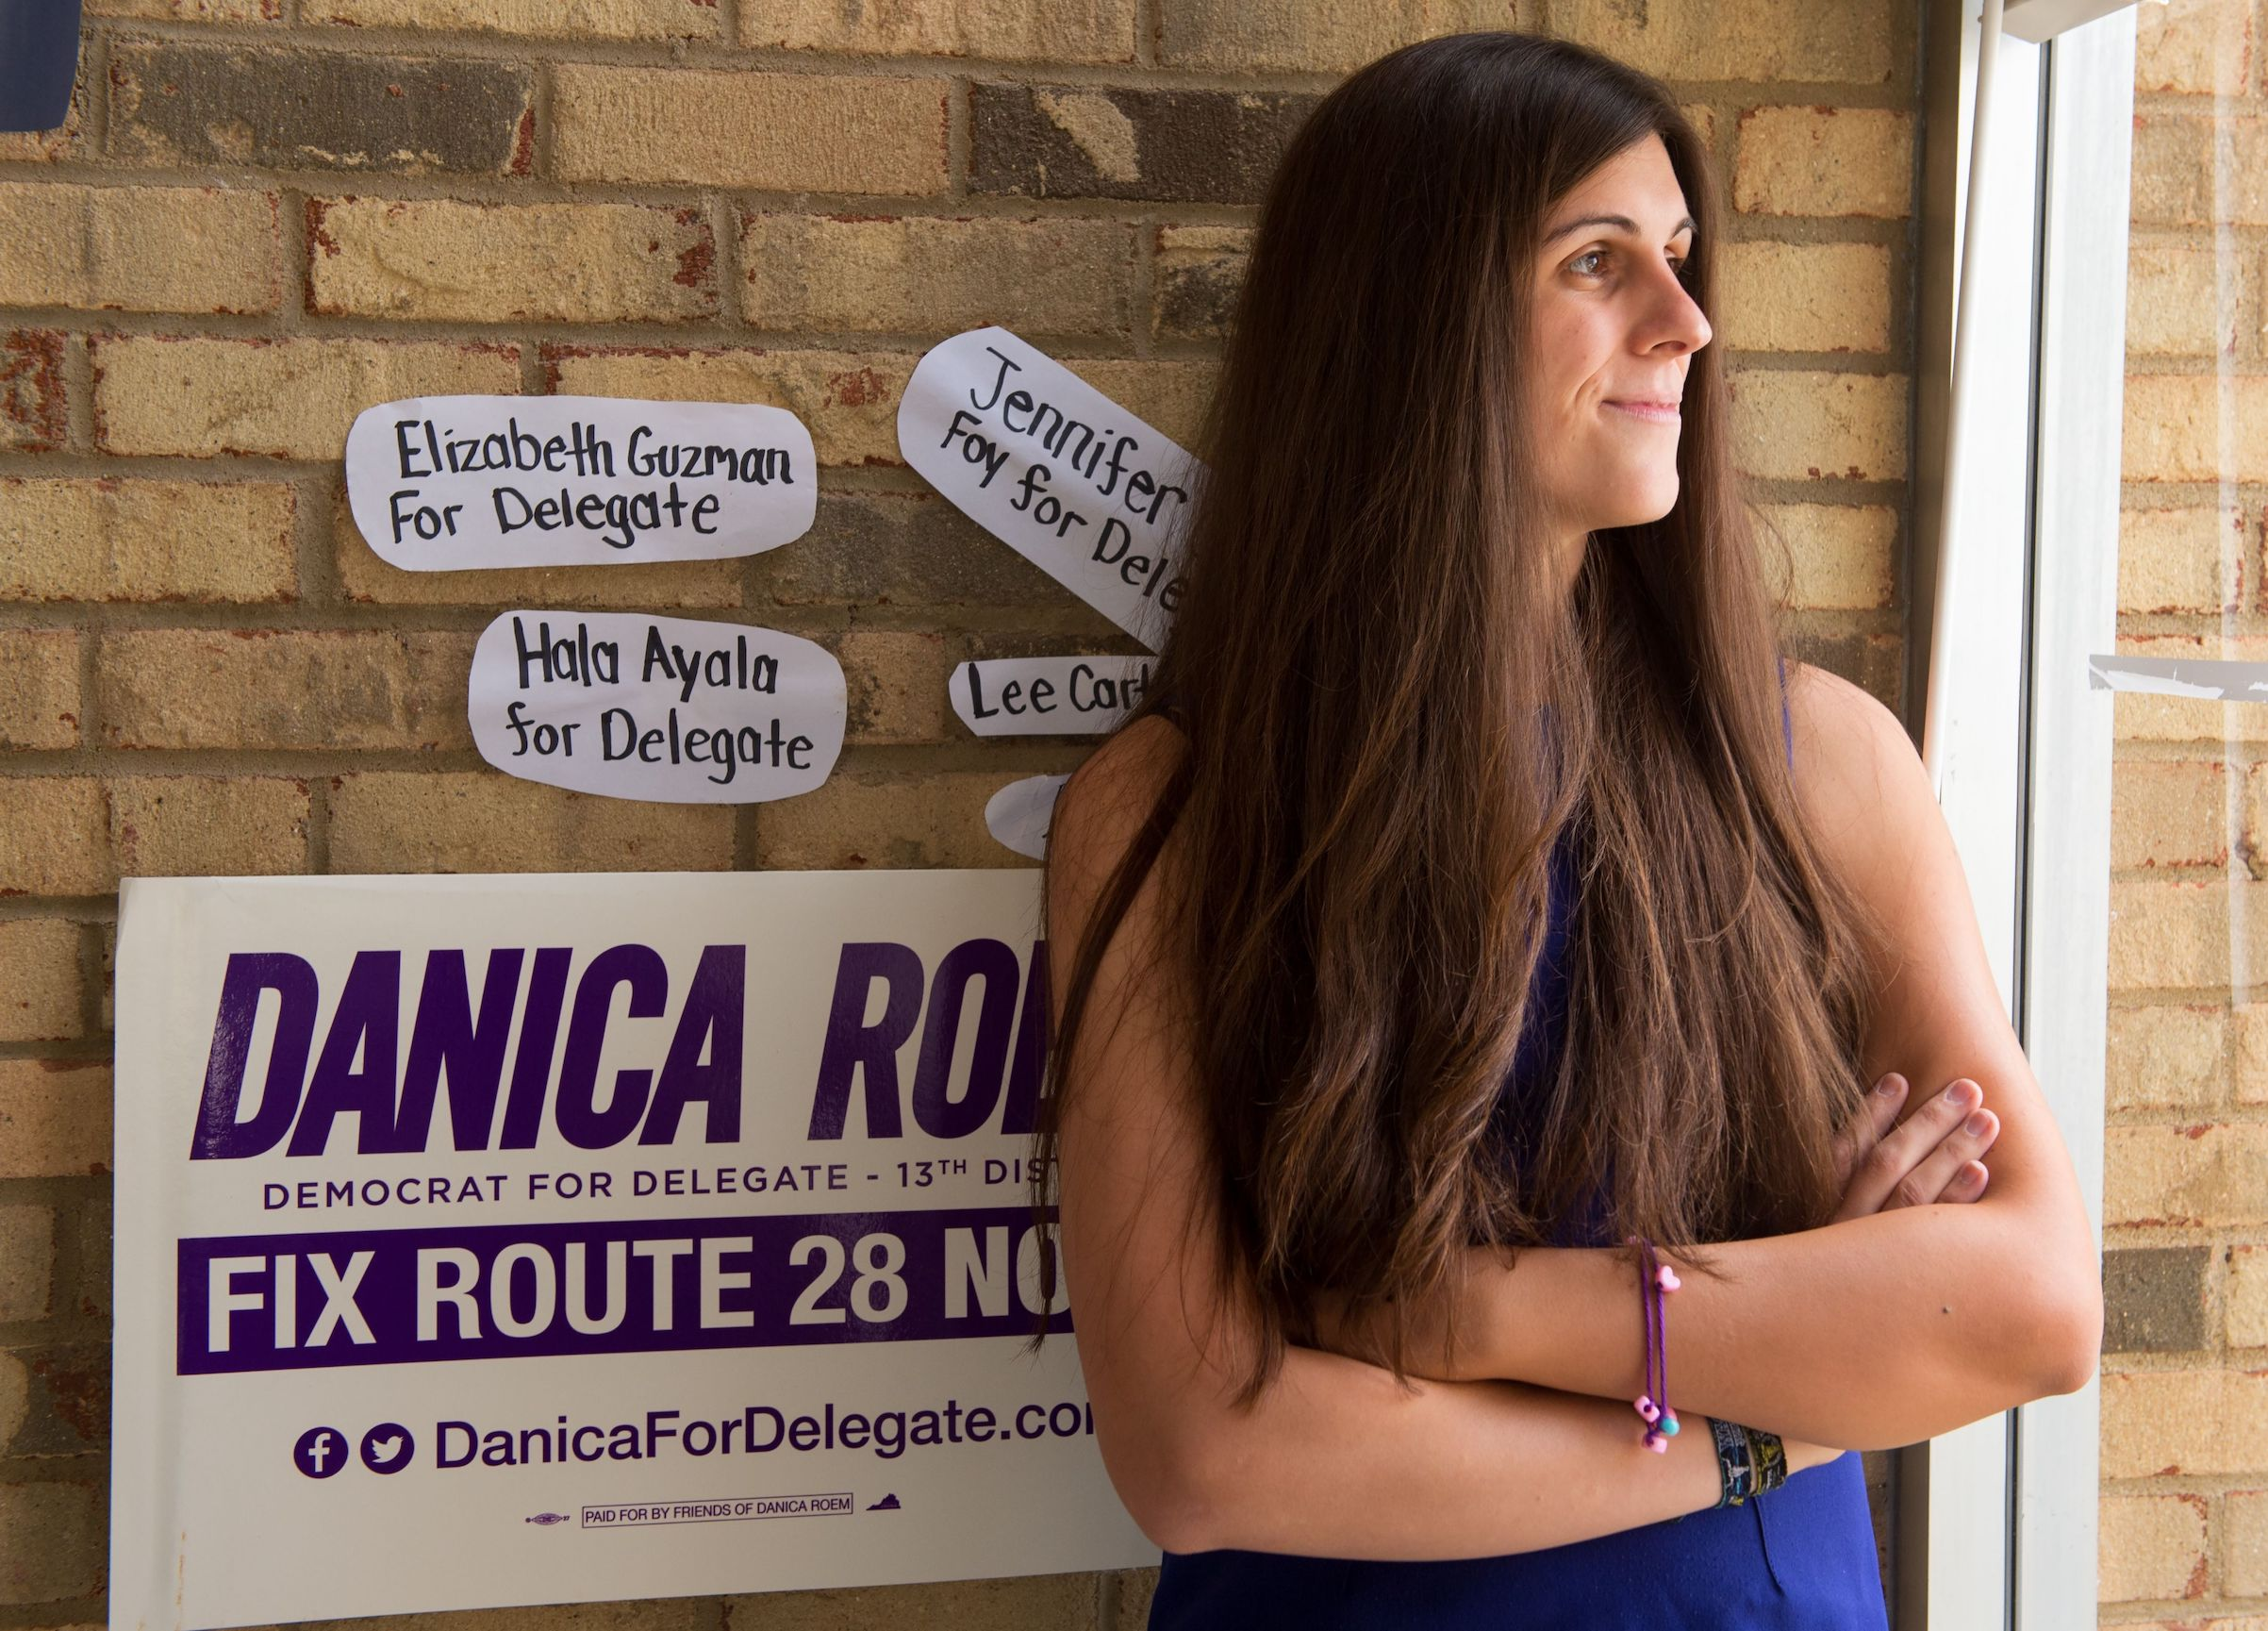 Danica Roem, a Democrat for Delegate in Virginia's district 13, and who is transgender, sits in her campaign office on Sept. 22, 2017, in Manassas, Virginia.